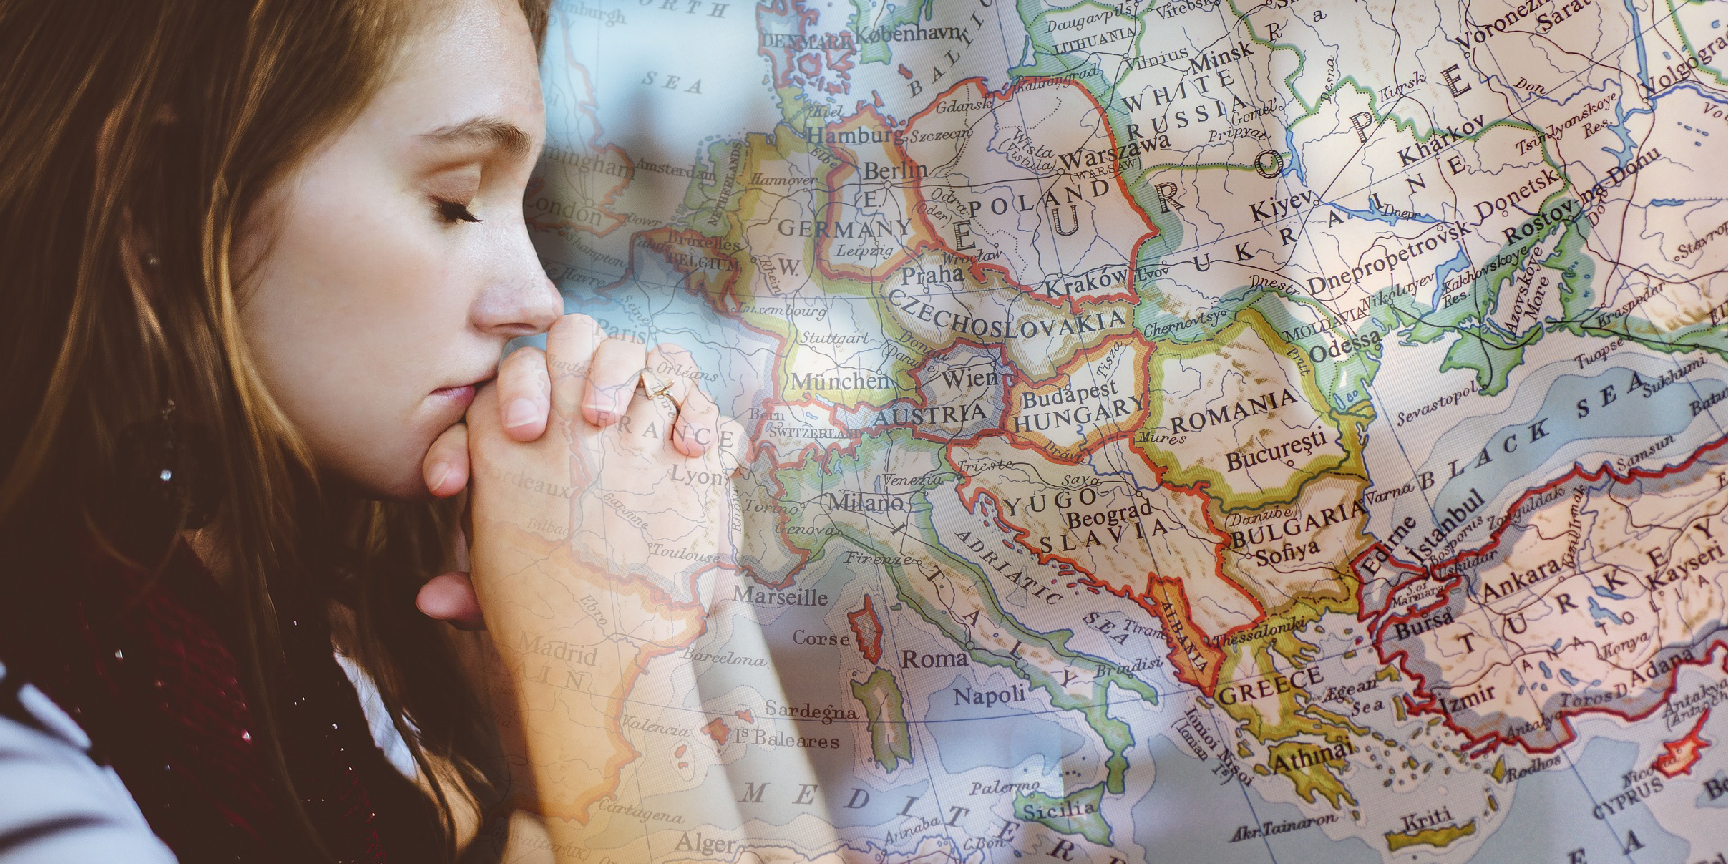 A woman praying and a map of Europe